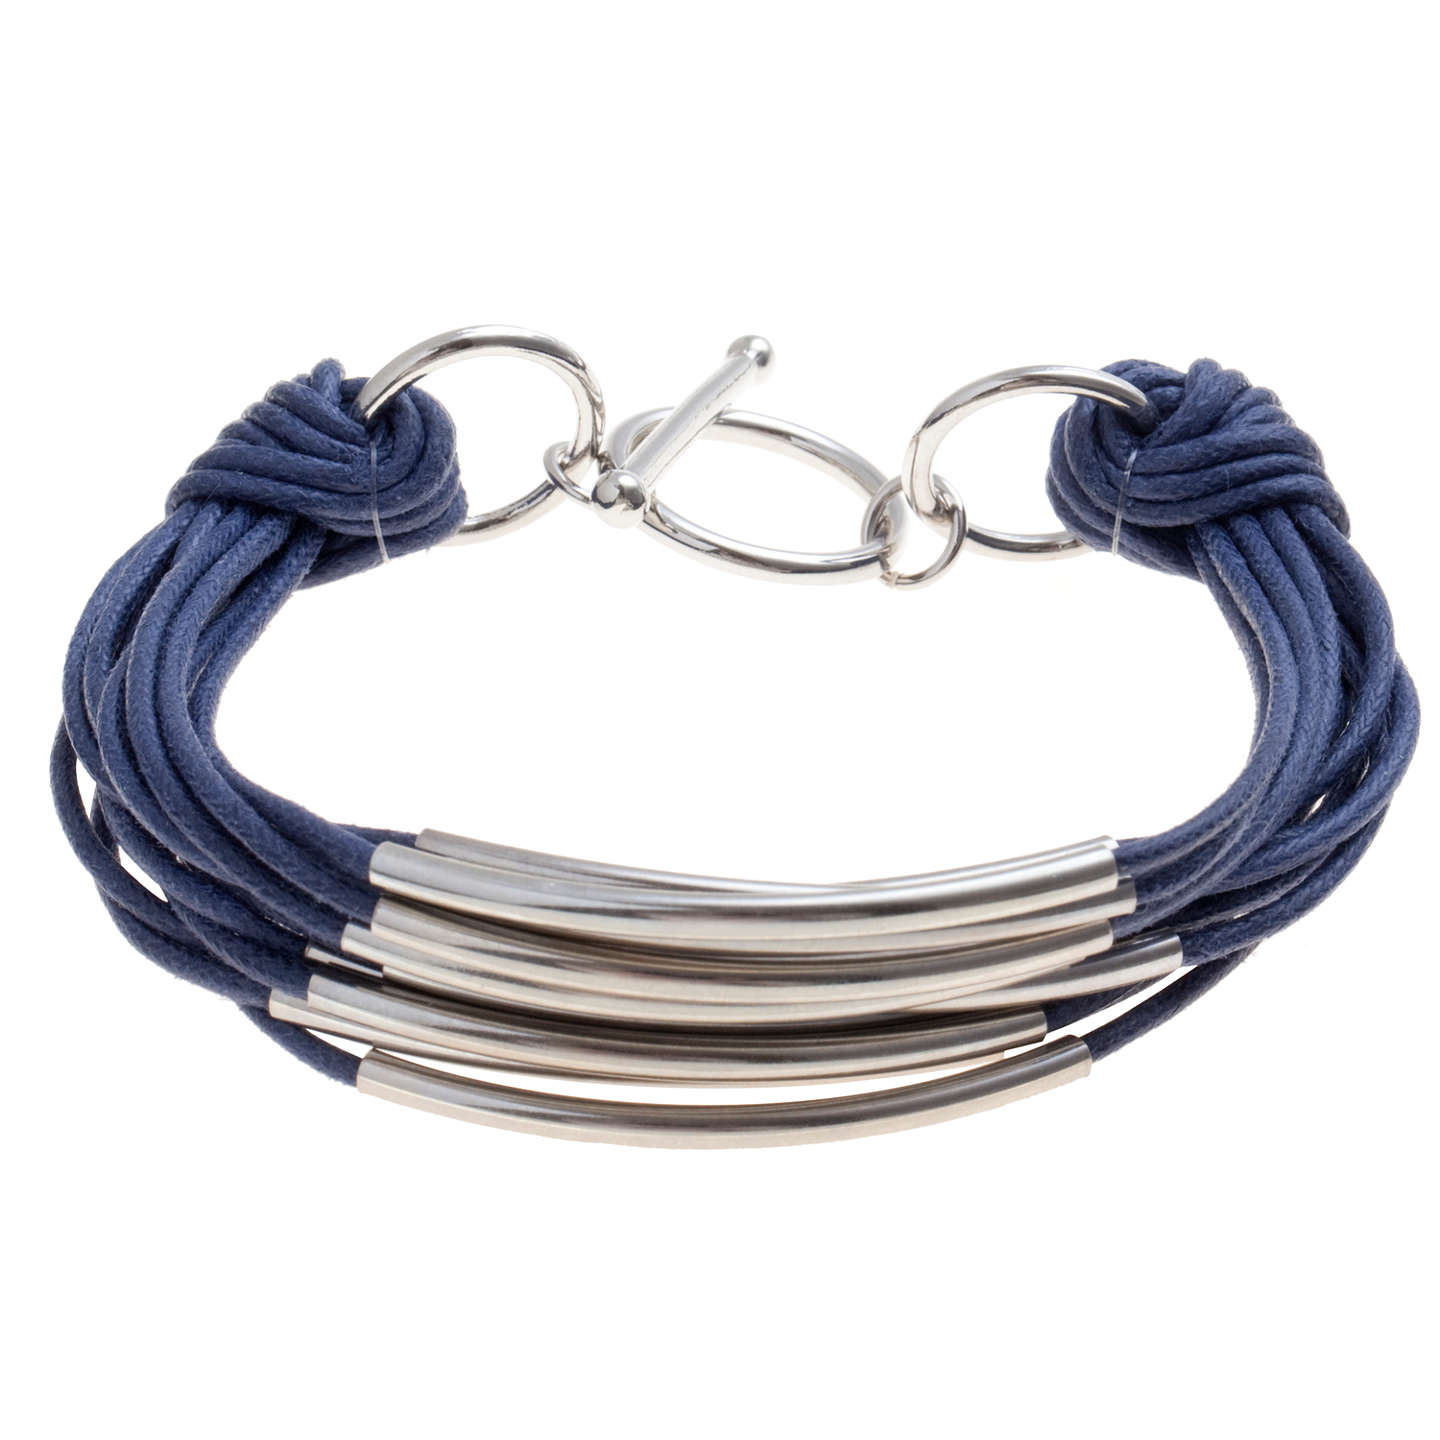 rtister statement products iris navy bangle a bracelet make